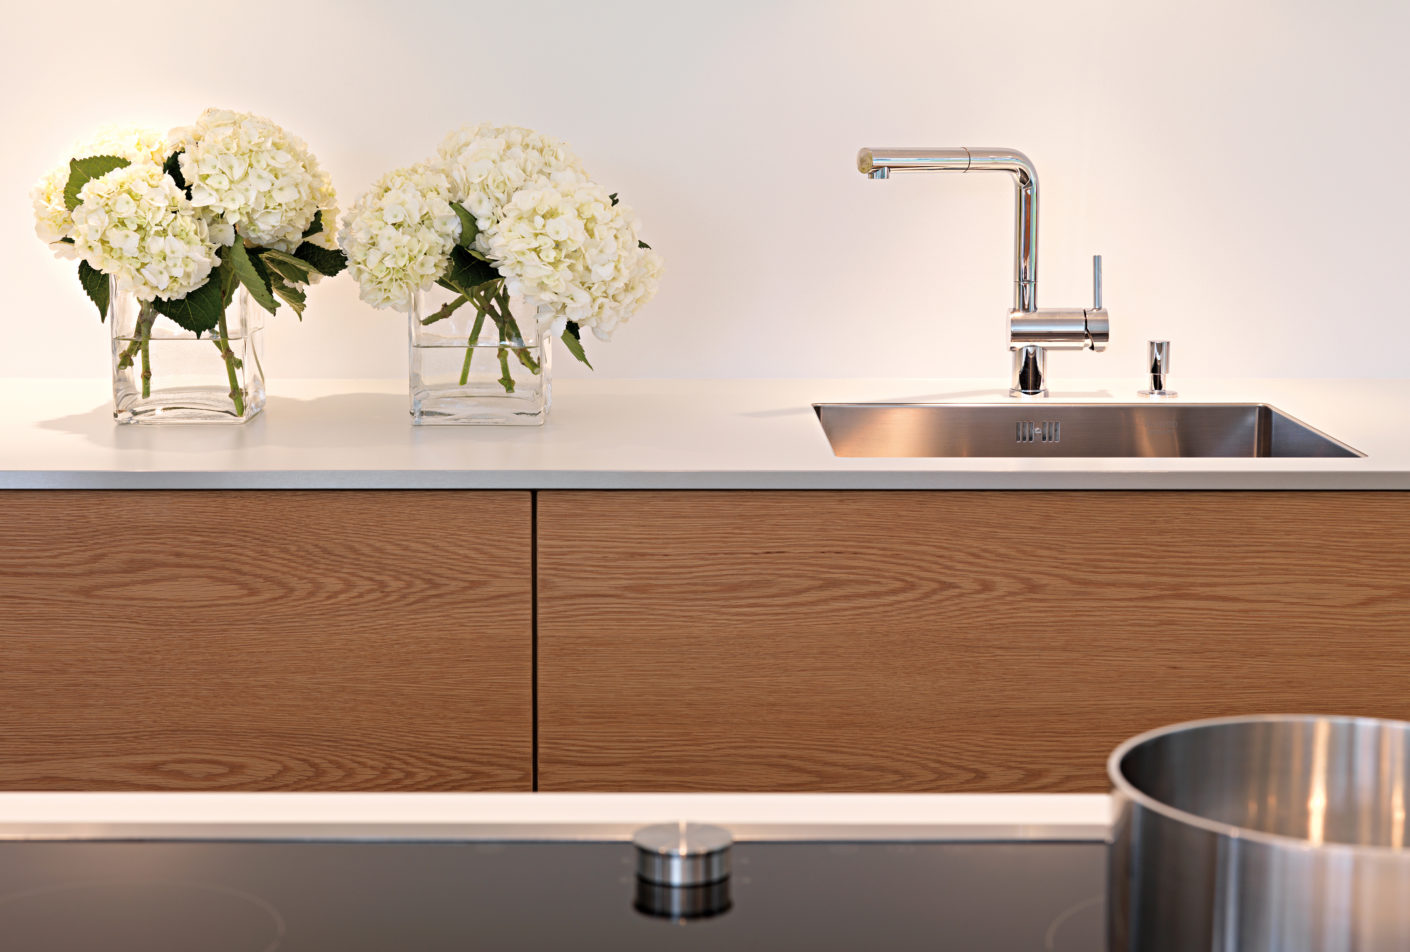 To offset the cool effect of the lacquered surfaces somewhat, the drawers in the fitted units have horizontally veneered oak fronts.